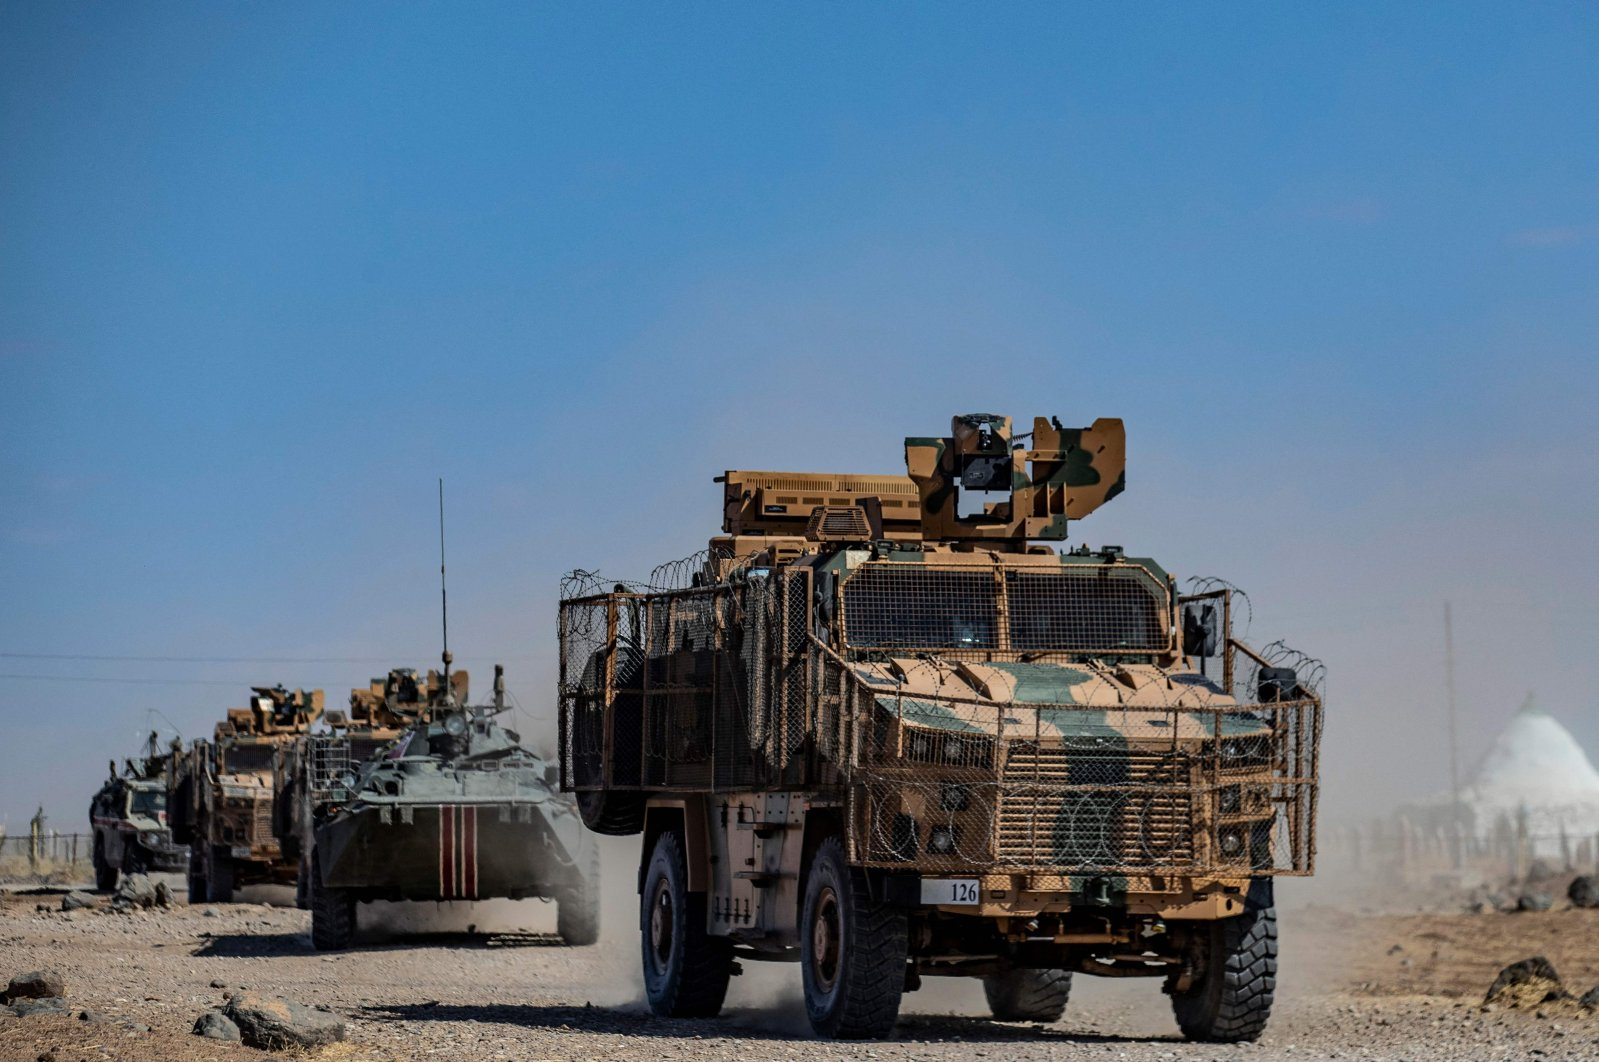 Turkish and Russian military vehicles patrol in the countryside of Rumaylan (Rmeilan) in Syria's northeastern Hasakeh on Sept. 16, 2021. (AFP Photo)